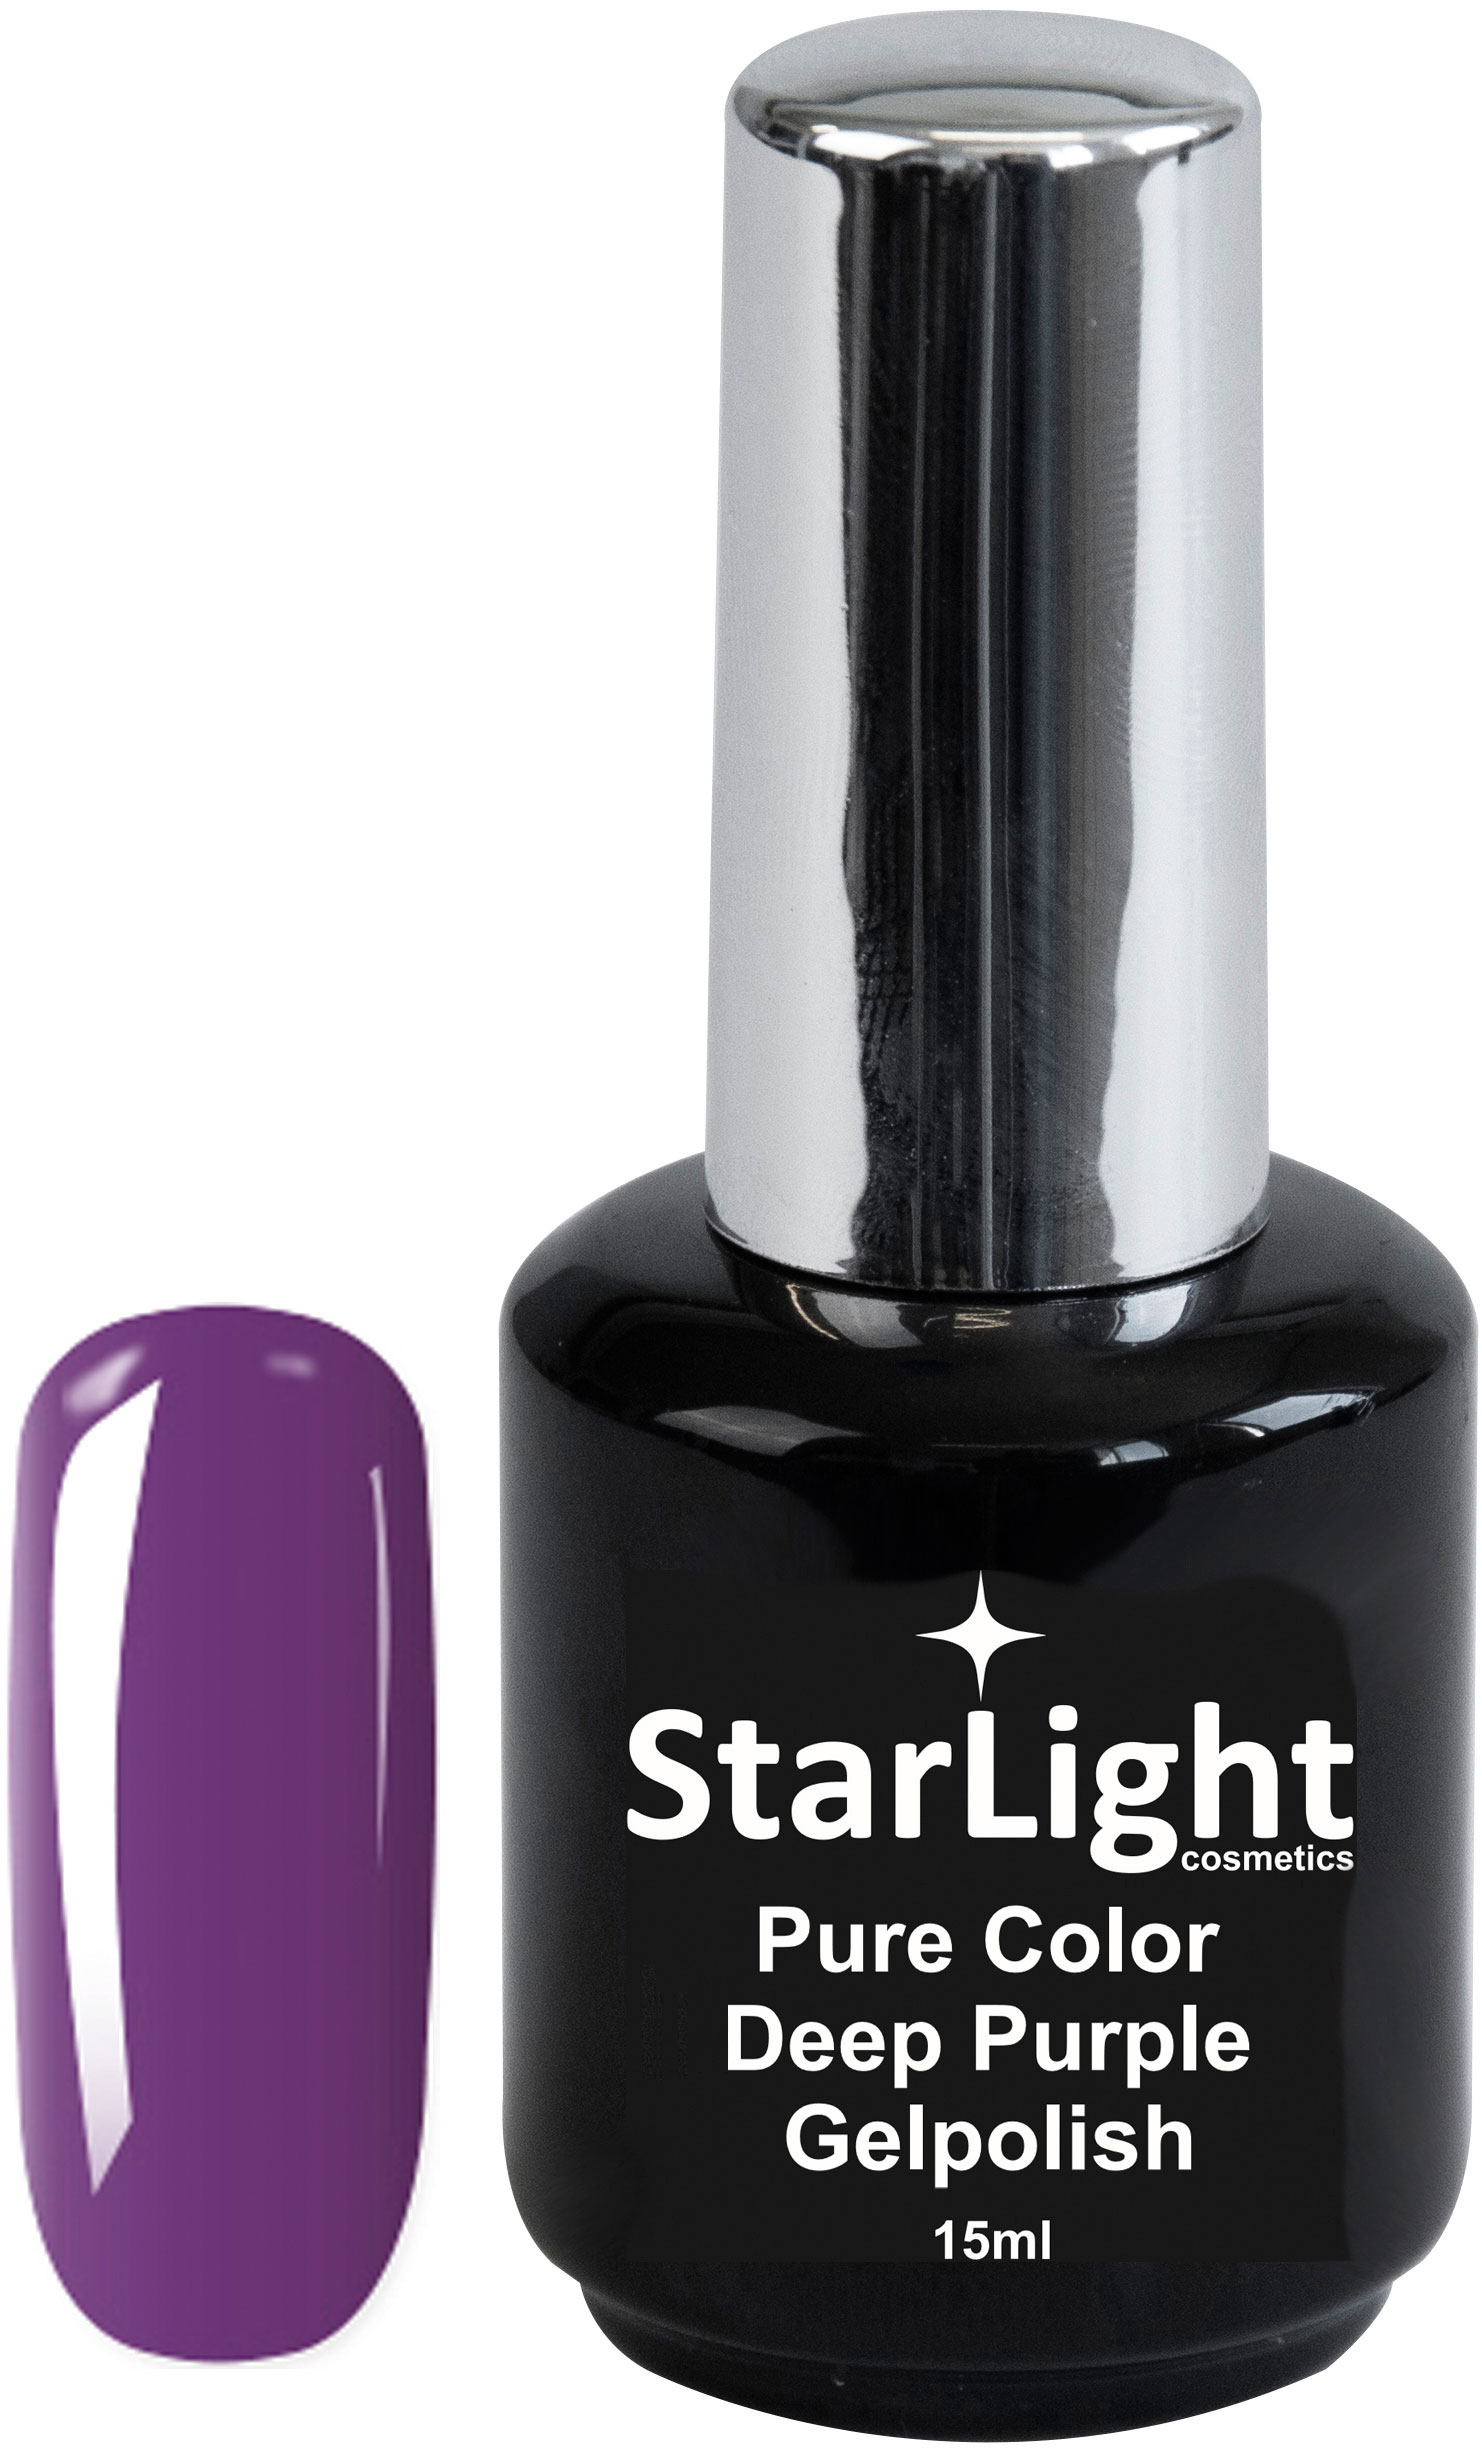 Naglar Gelpolish Pure Color Deep Purple - 15 ml